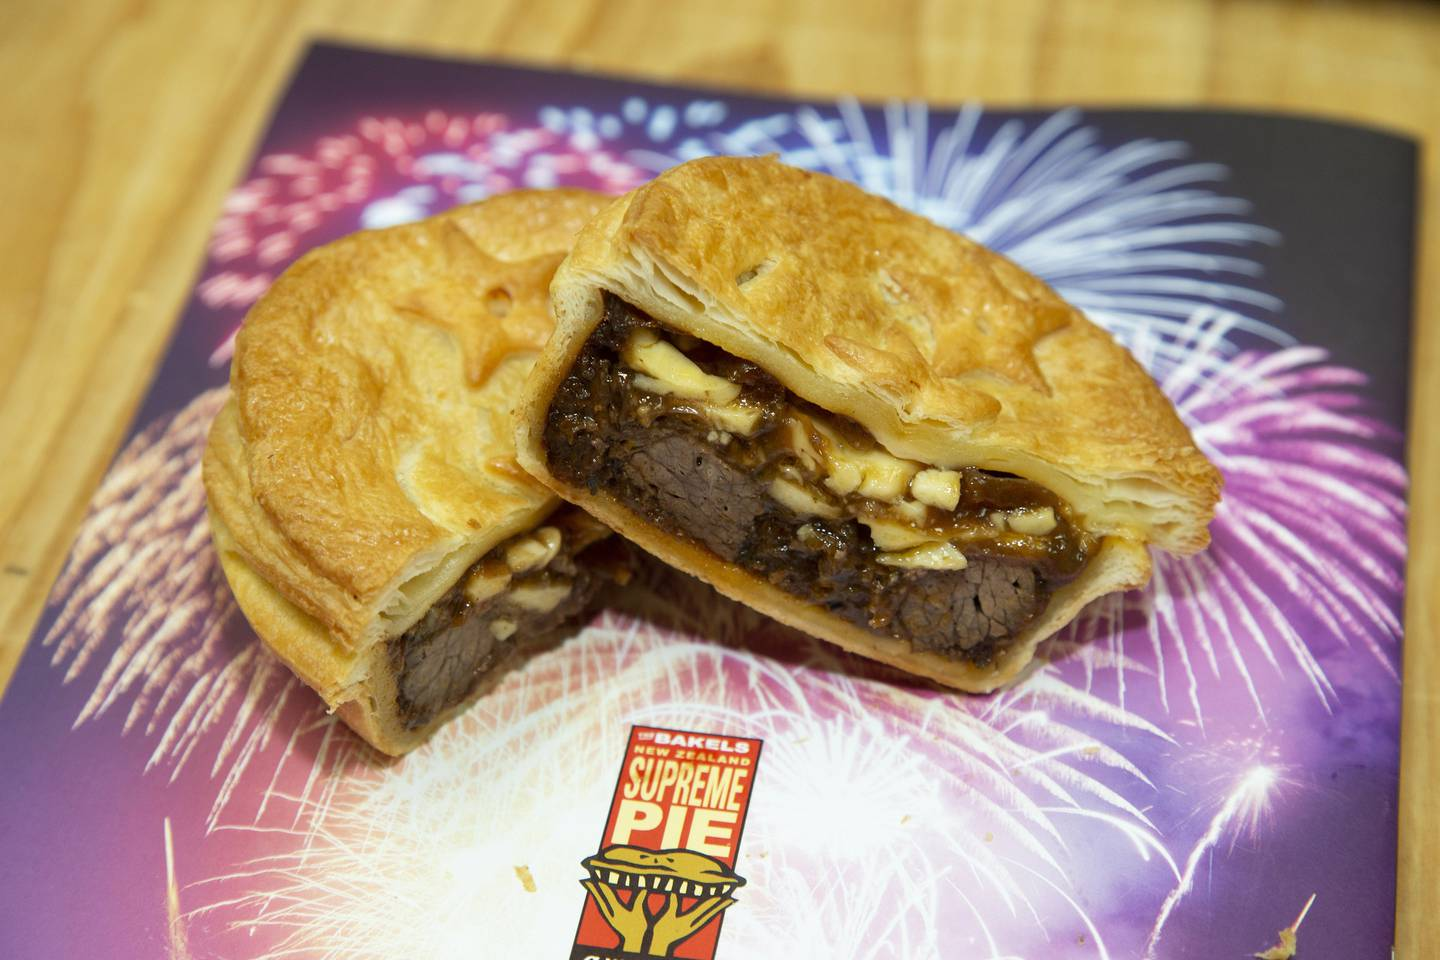 Auckland baker Sopheap Long's steak and cheese pie. Photo / Supplied